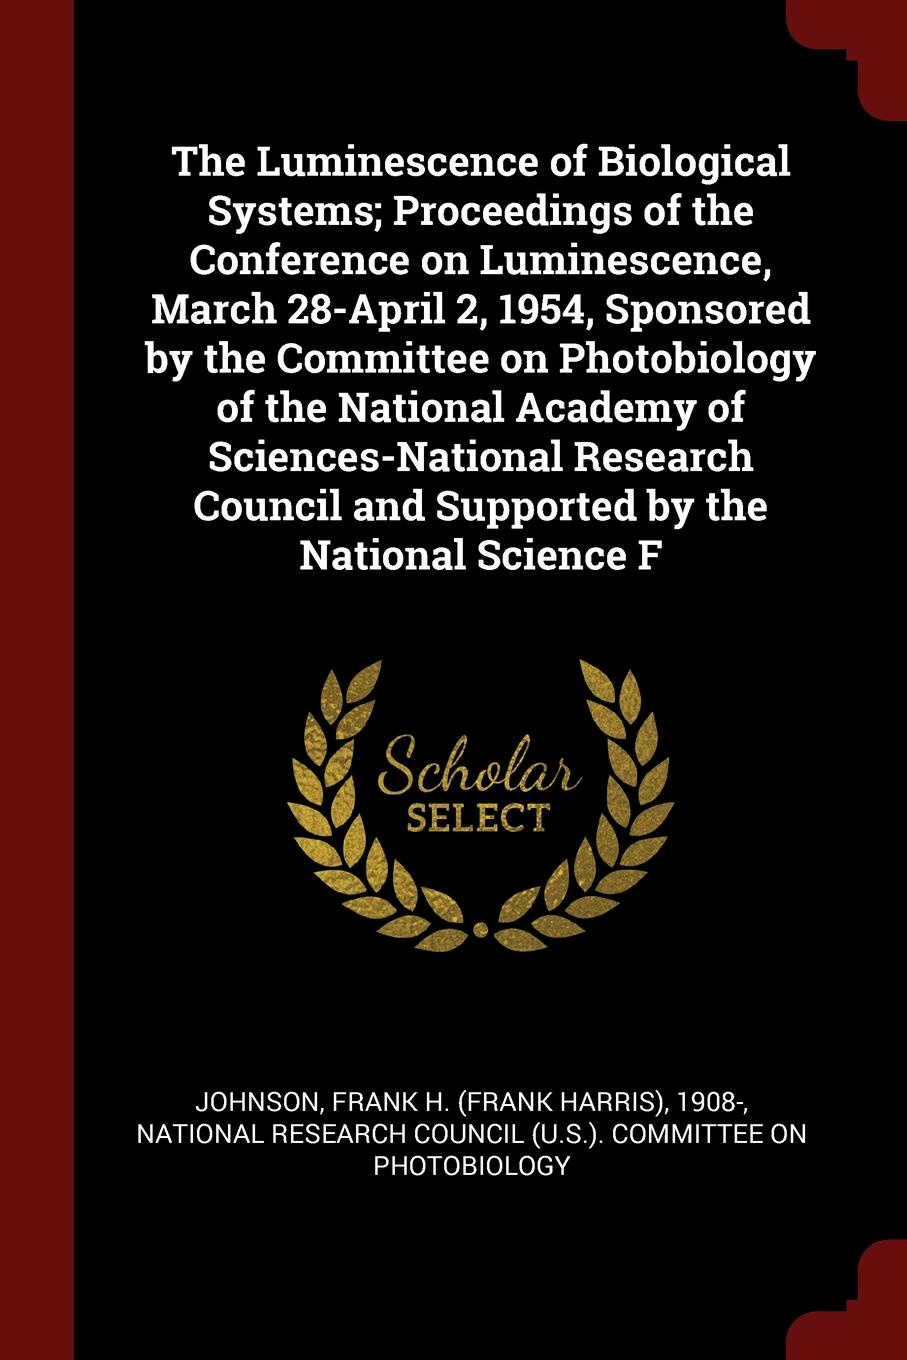 The Luminescence of Biological Systems; Proceedings of the Conference on Luminescence, March 28-April 2, 1954, Sponsored by the Committee on Photobiology of the National Academy of Sciences-National Research Council and Supported by the National S...